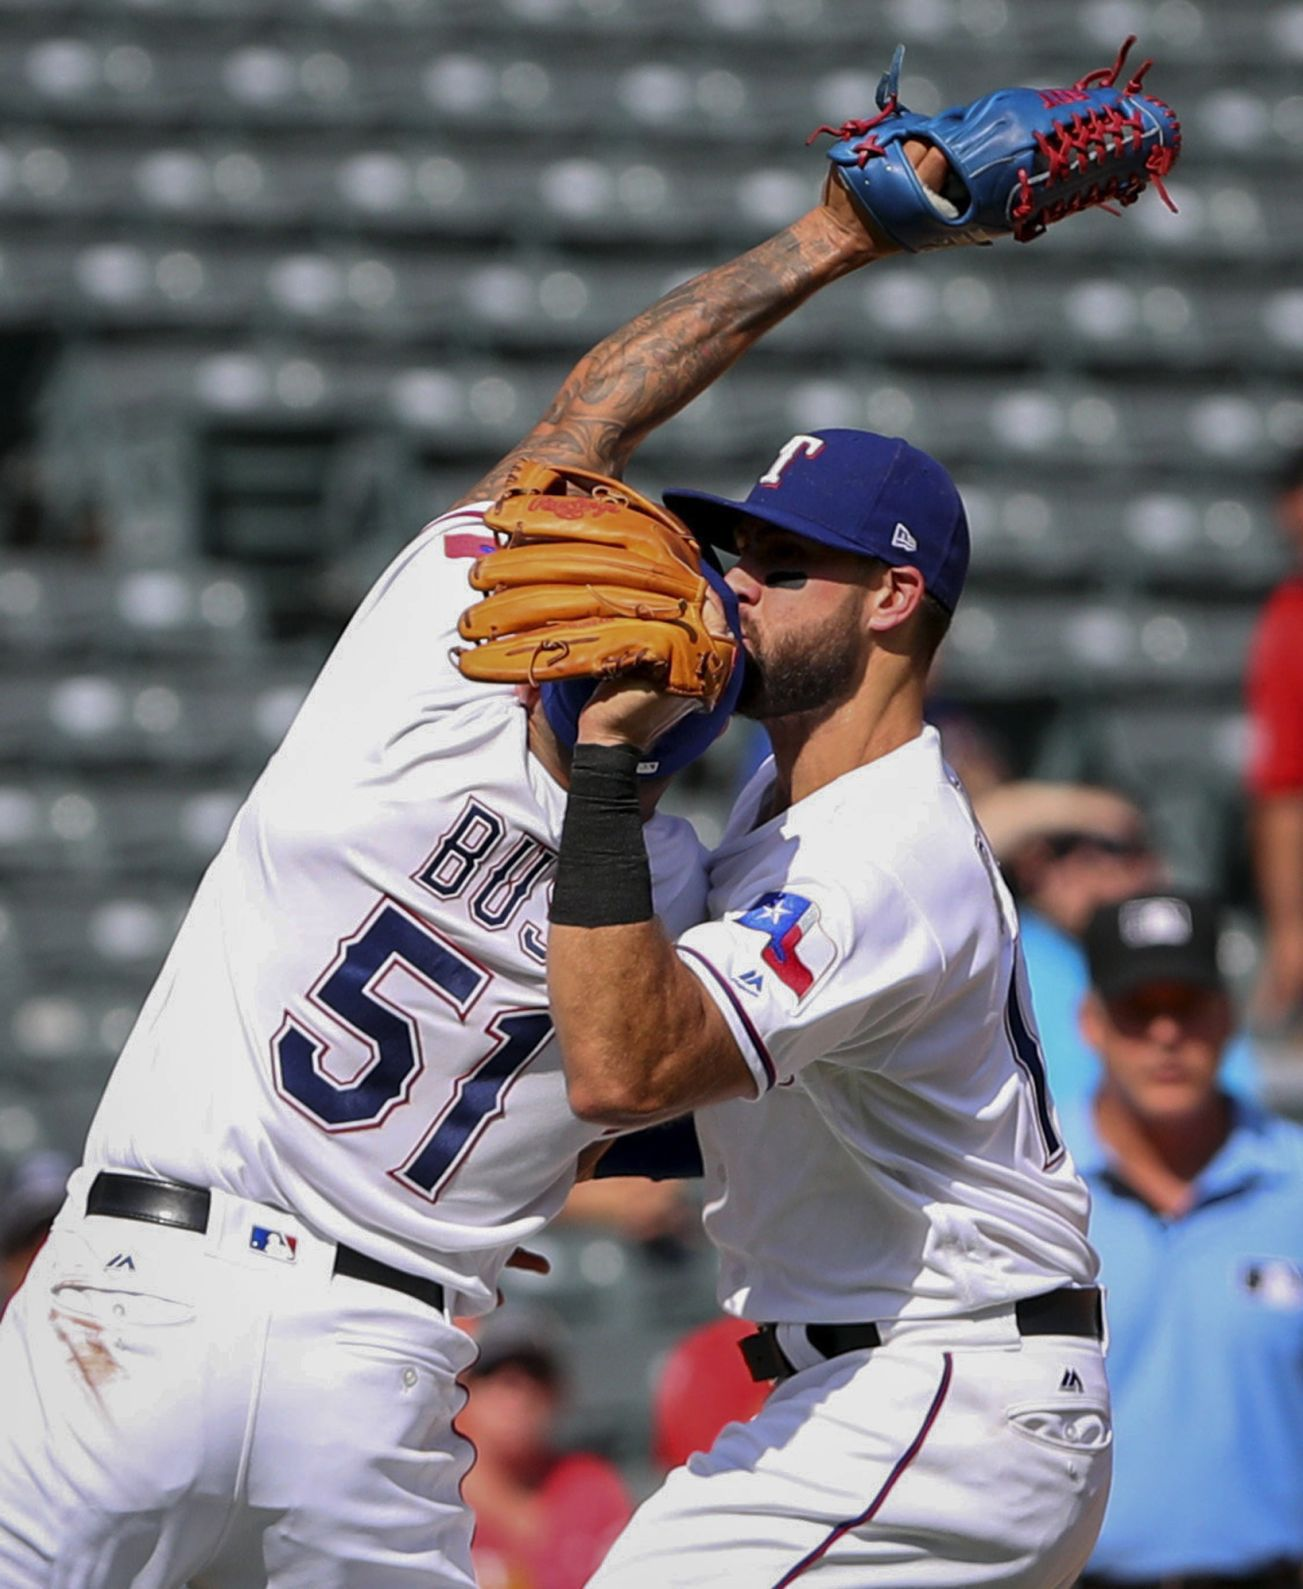 Matt Bush, Joey Gallo in concussion protocol following collision